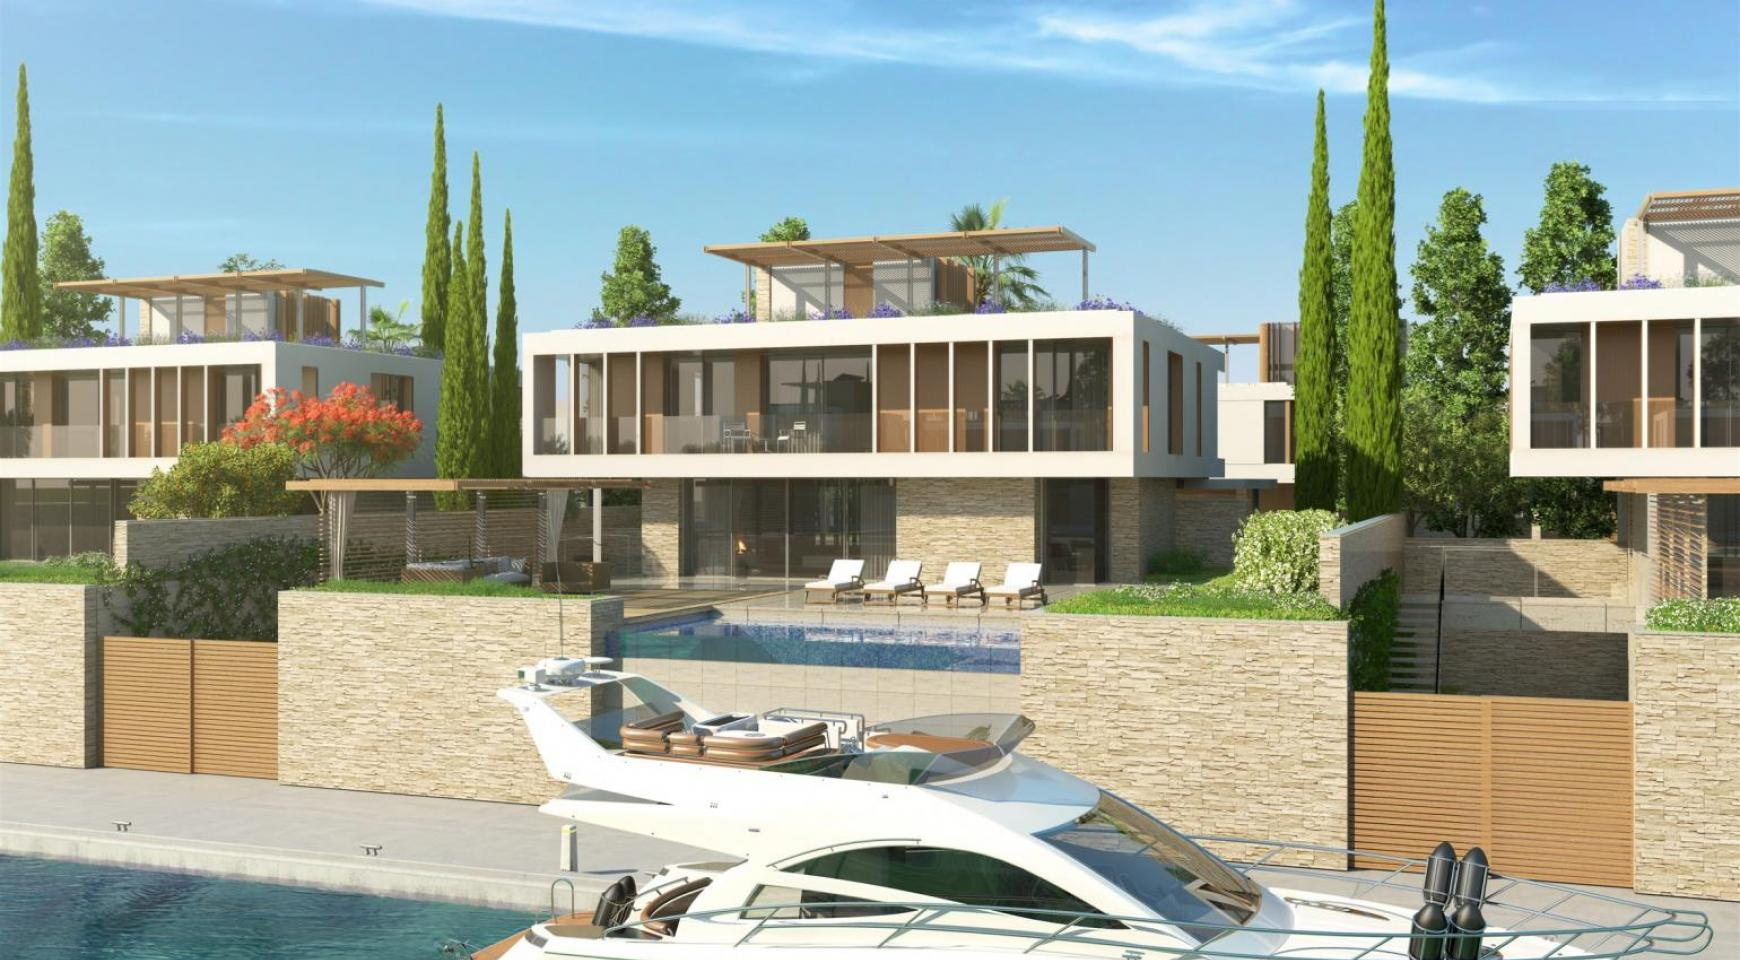 Stunning 4 Bedroom Villa in an Exclusive Project by the Sea - 3